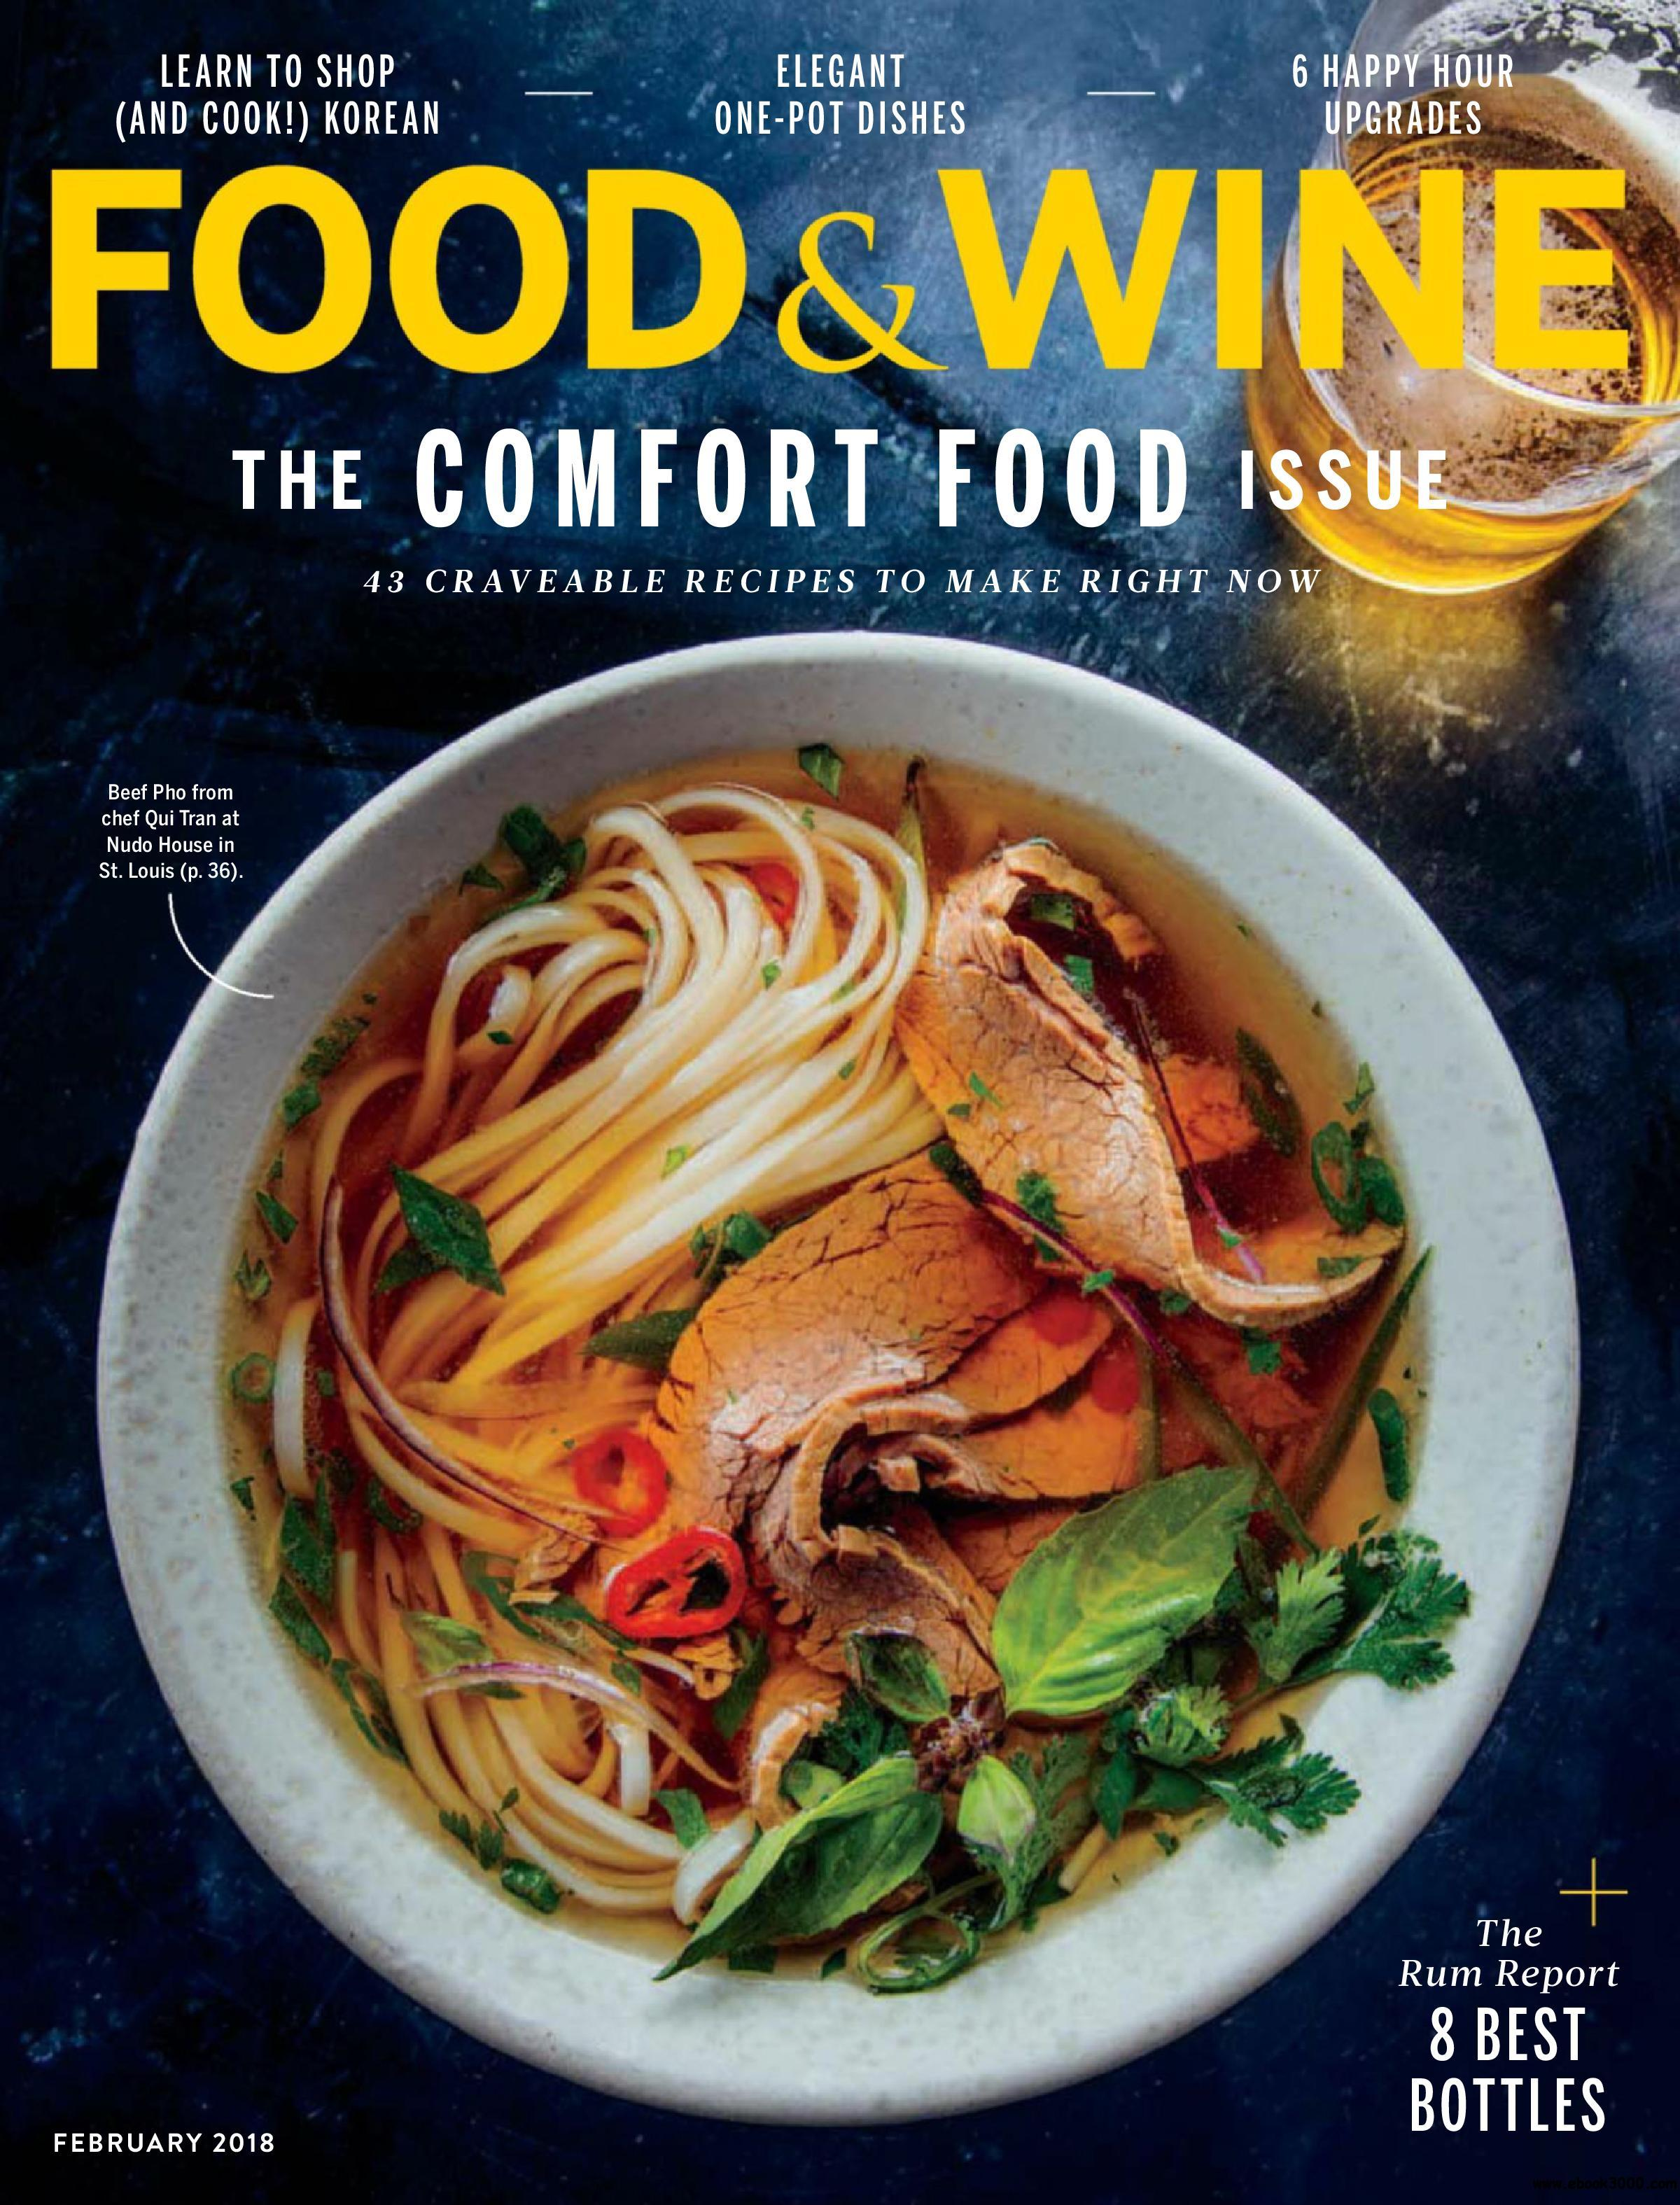 Food wine usa february 2018 free ebooks download english 96 pages true pdf 317 mb forumfinder Image collections